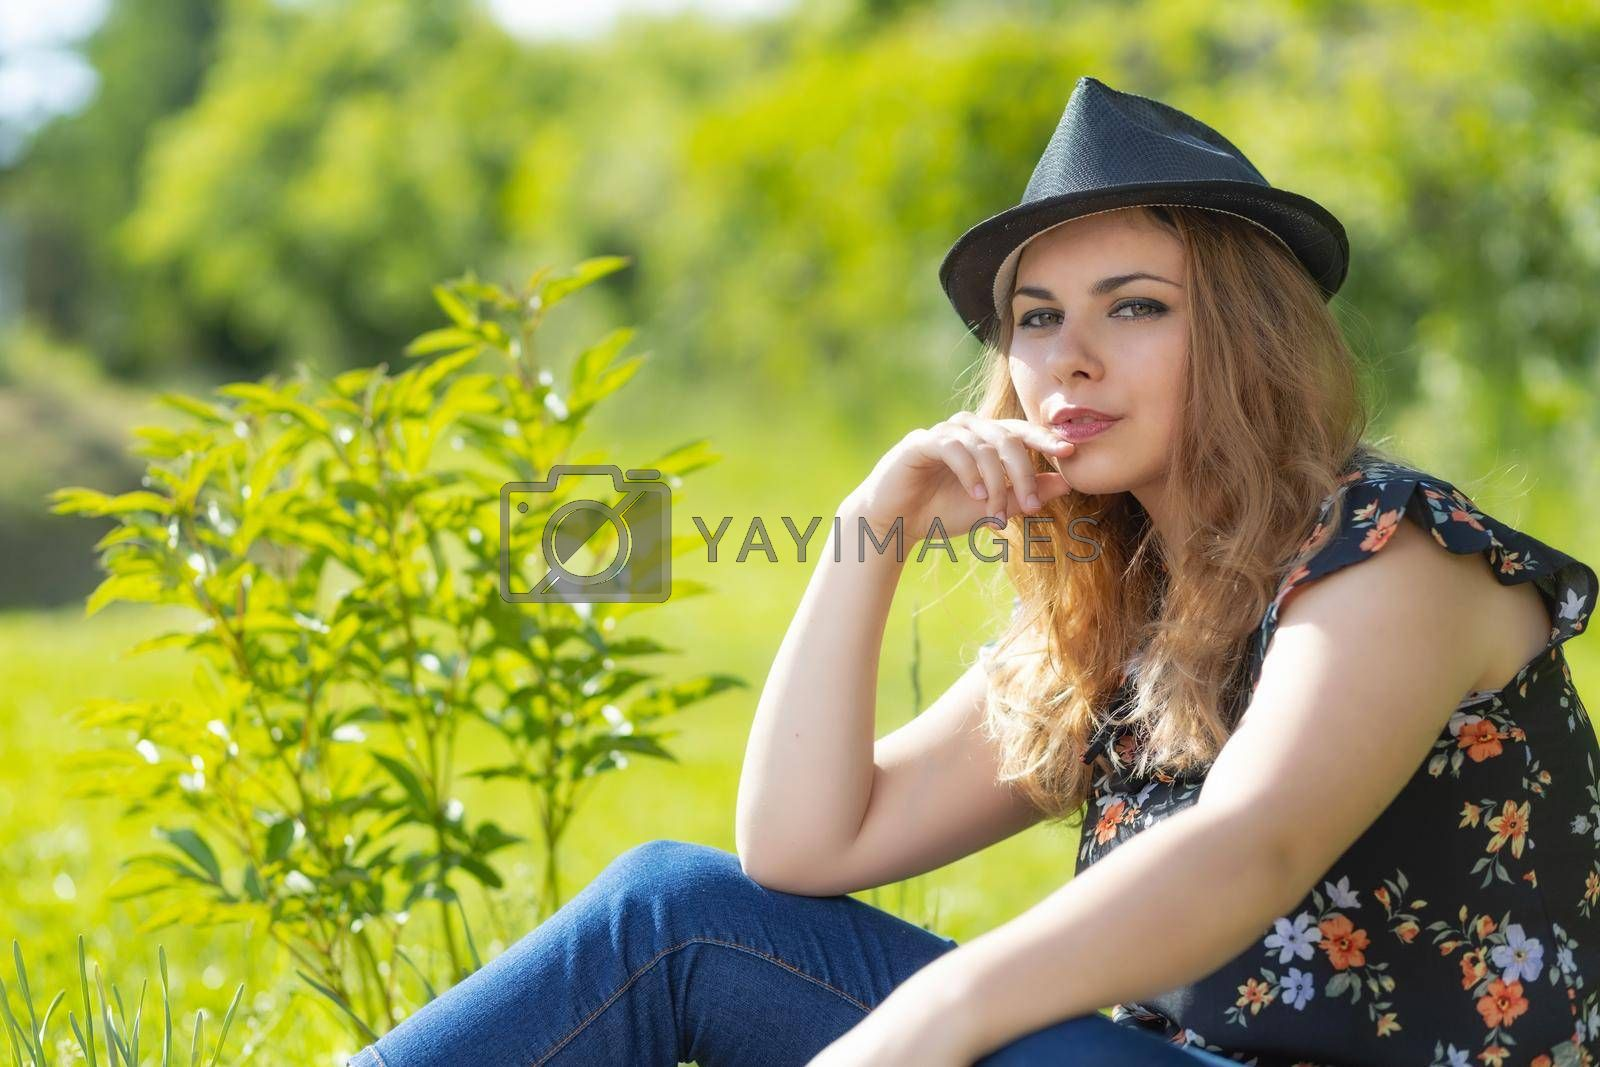 Royalty free image of Portrait of beautiful young woman posing in hat outdoors. by Frank11